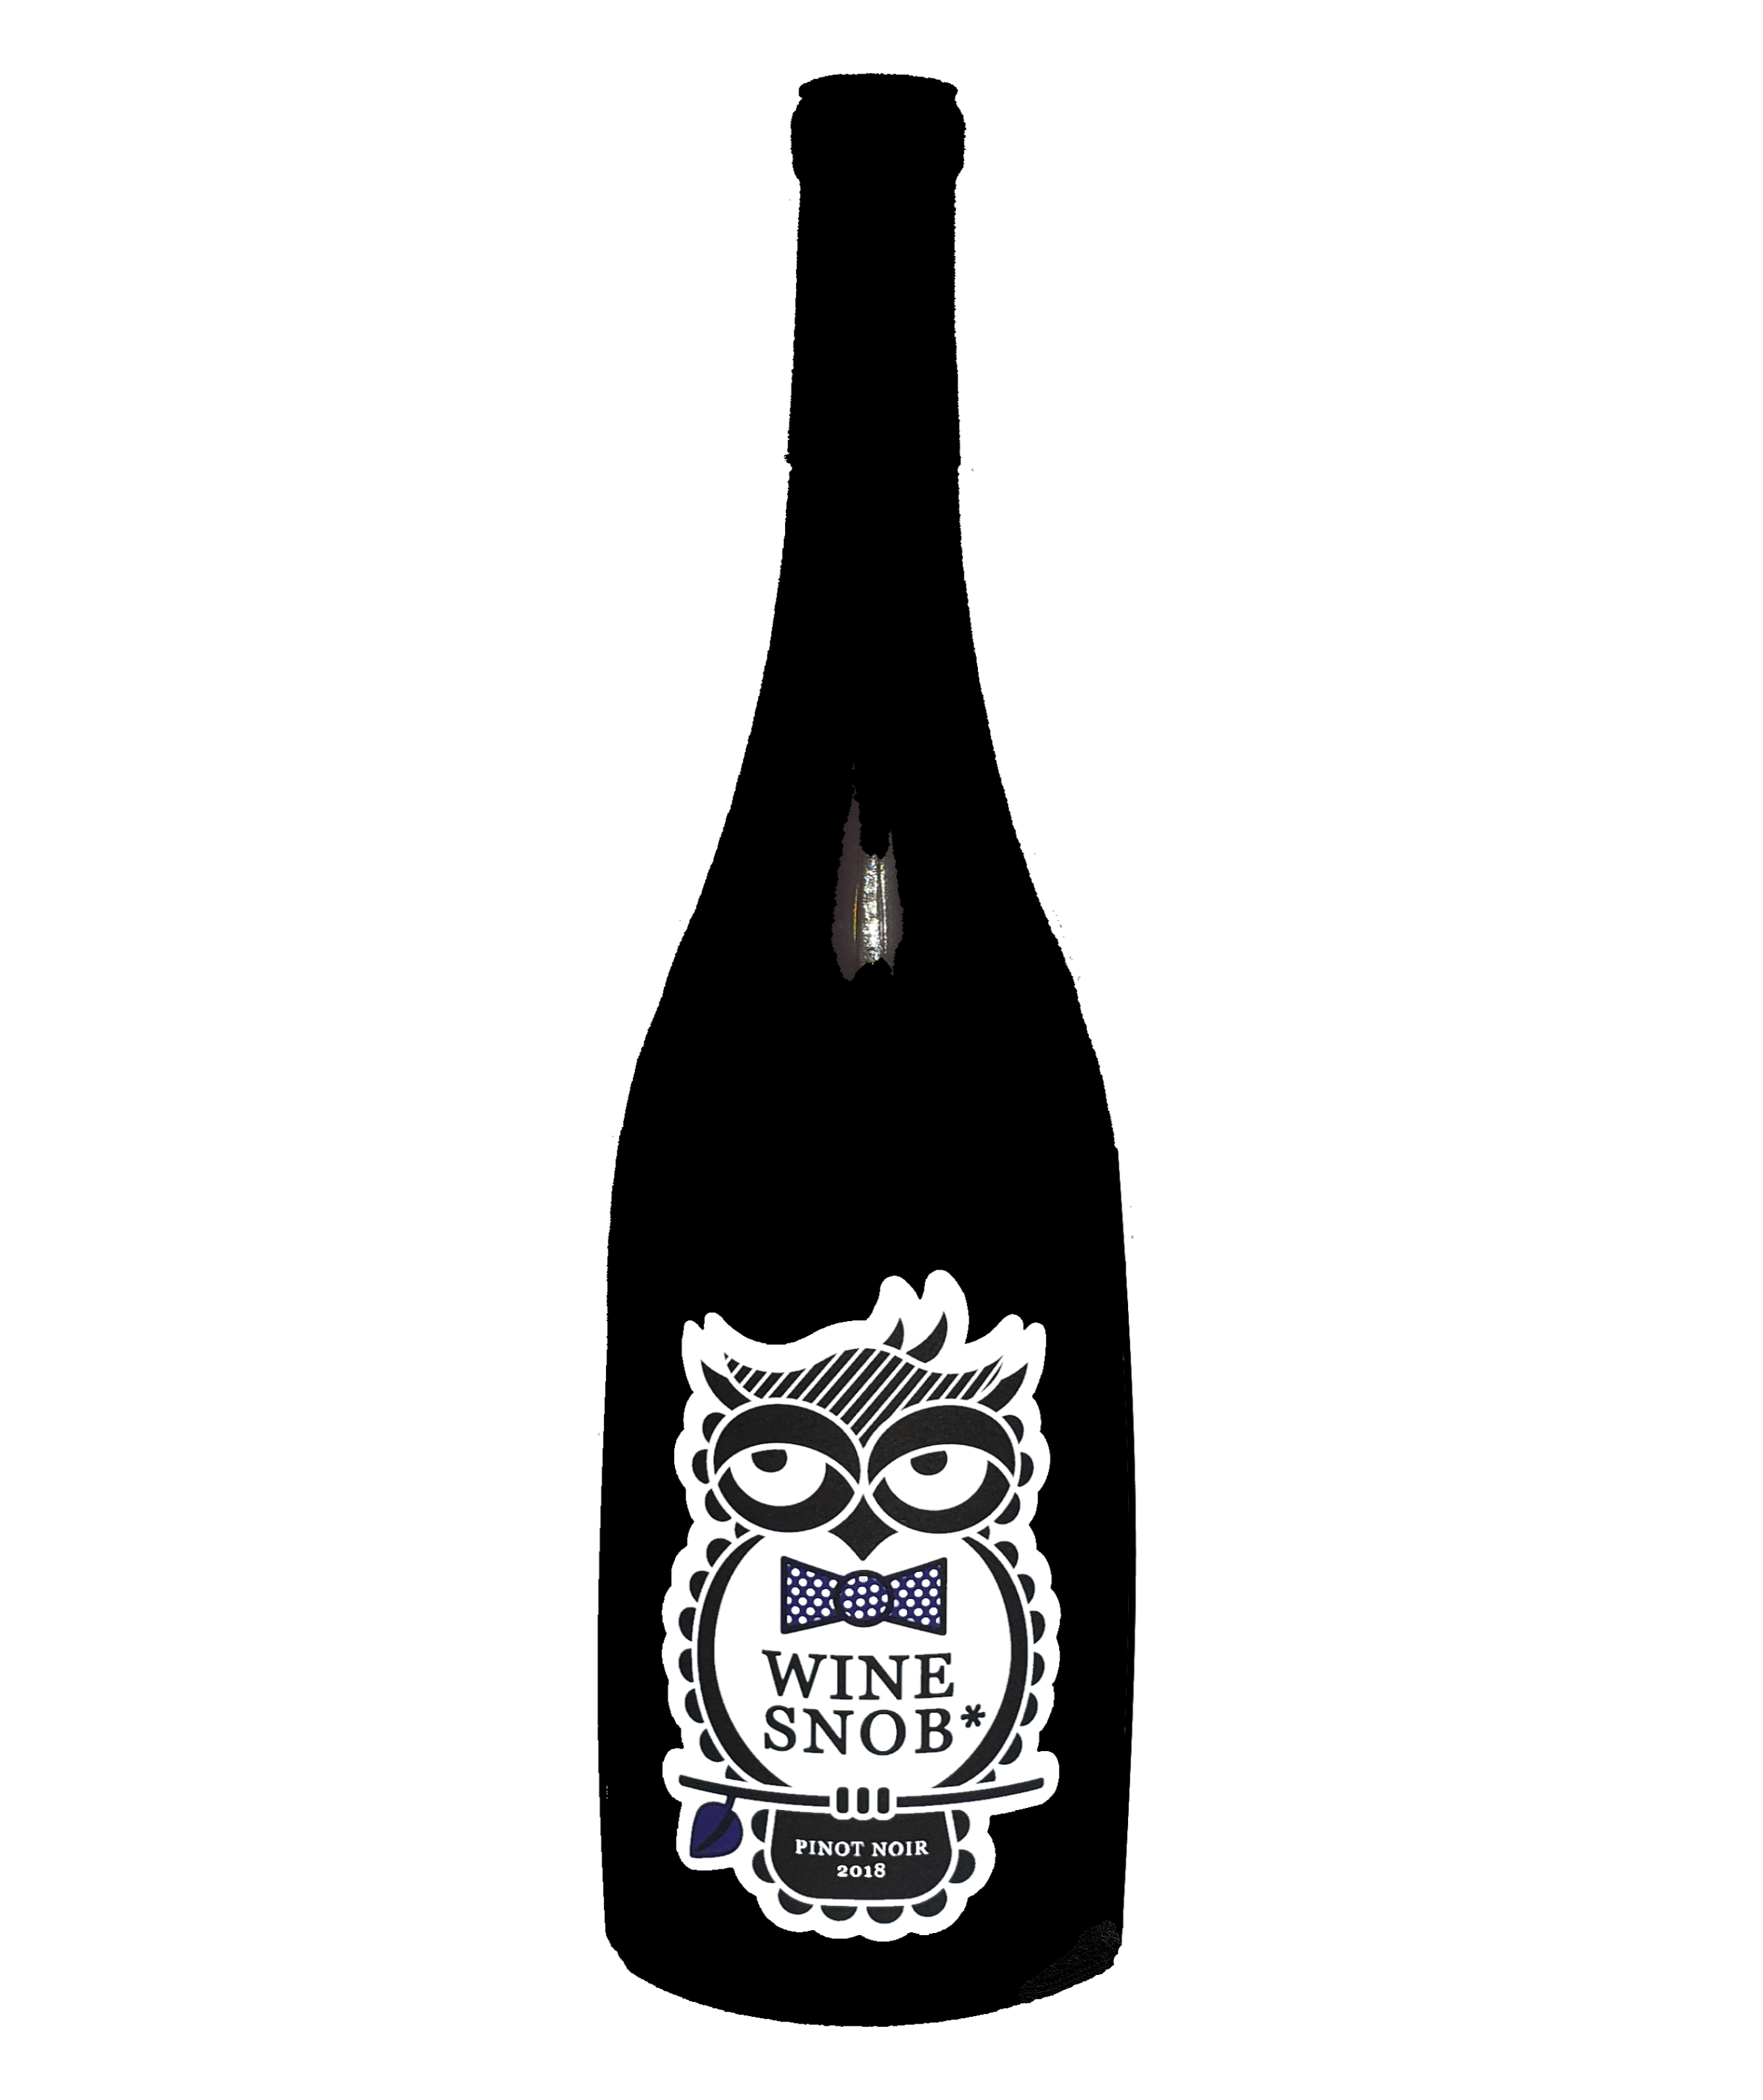 Burgundy-style bottle with the Wine Snob* 2018 Pinot Noir label showing an owl perched on a stick with a leaf, slightly rolling its eyes, and wearing an indigo bowtie with white polka dots.